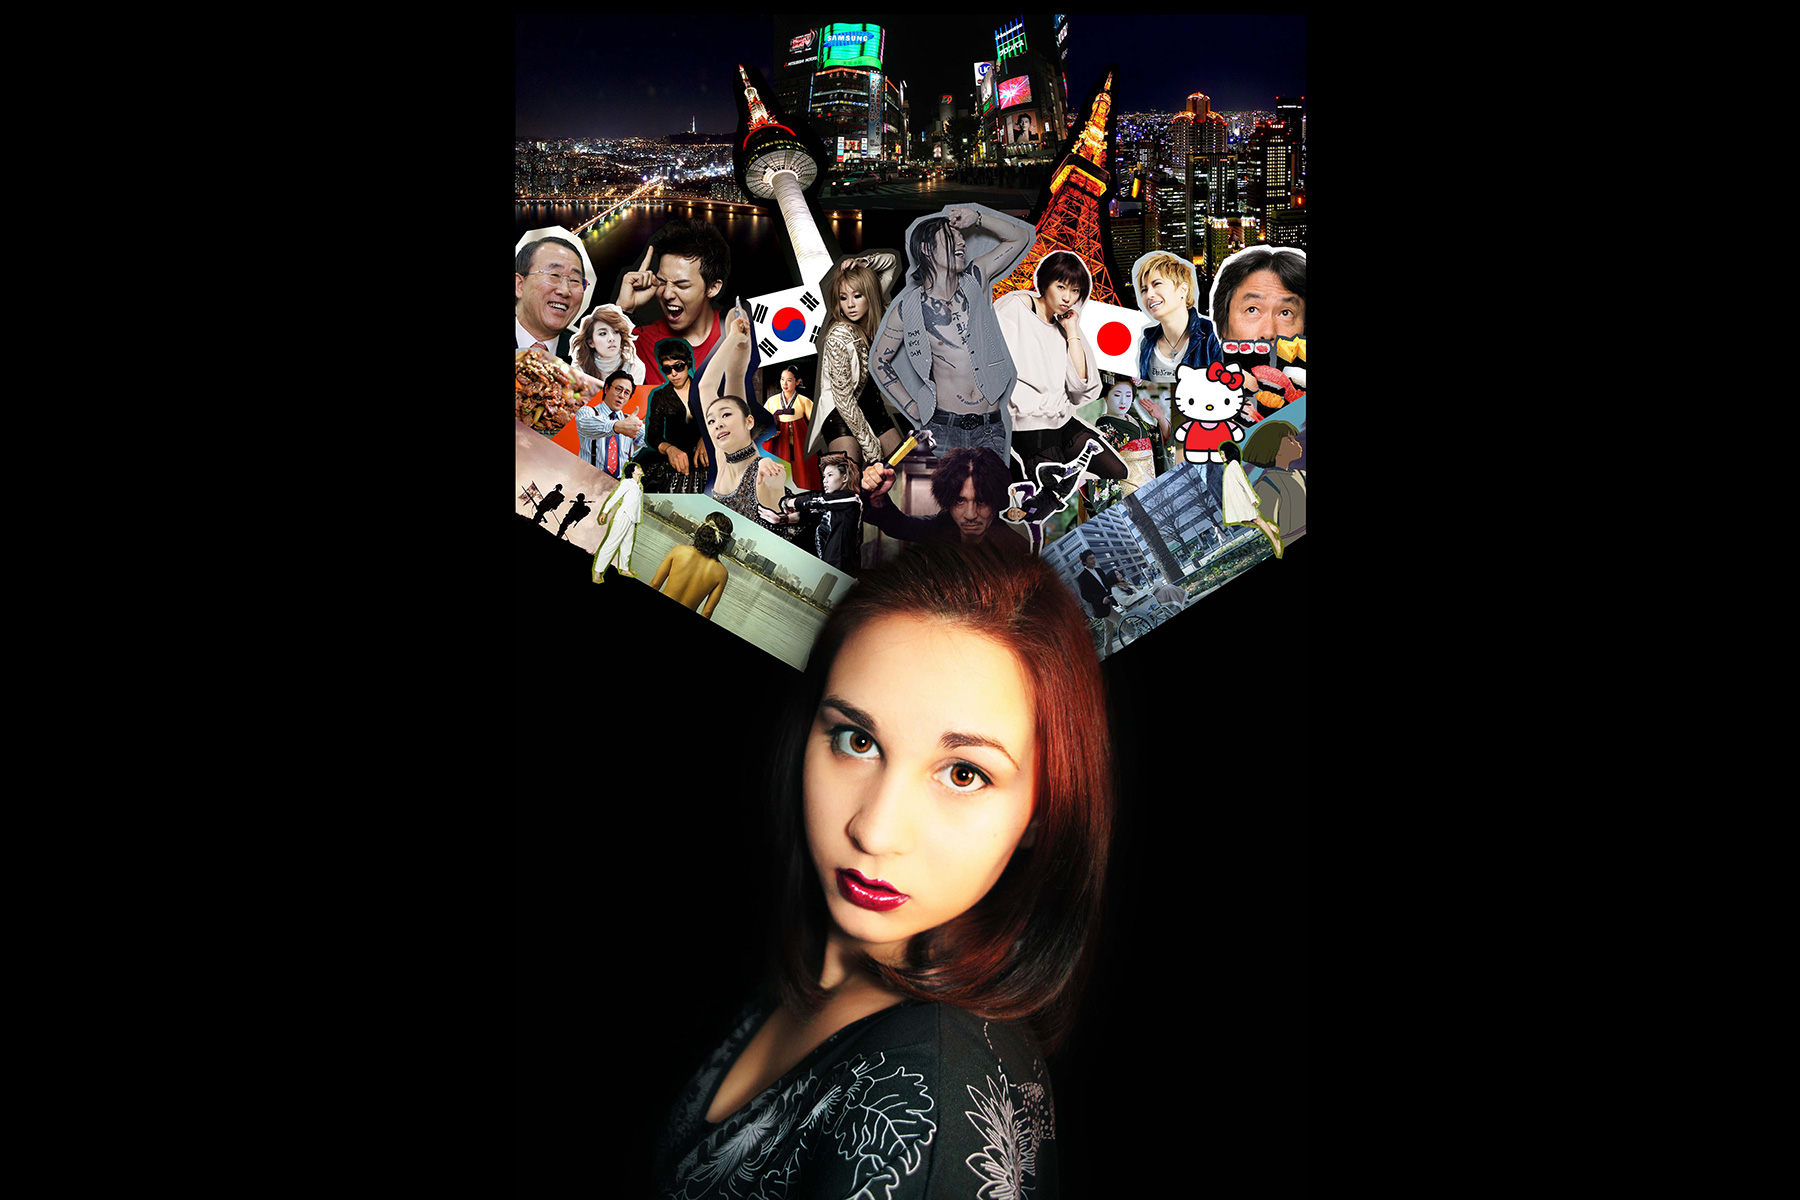 Girl with collage of international symbols